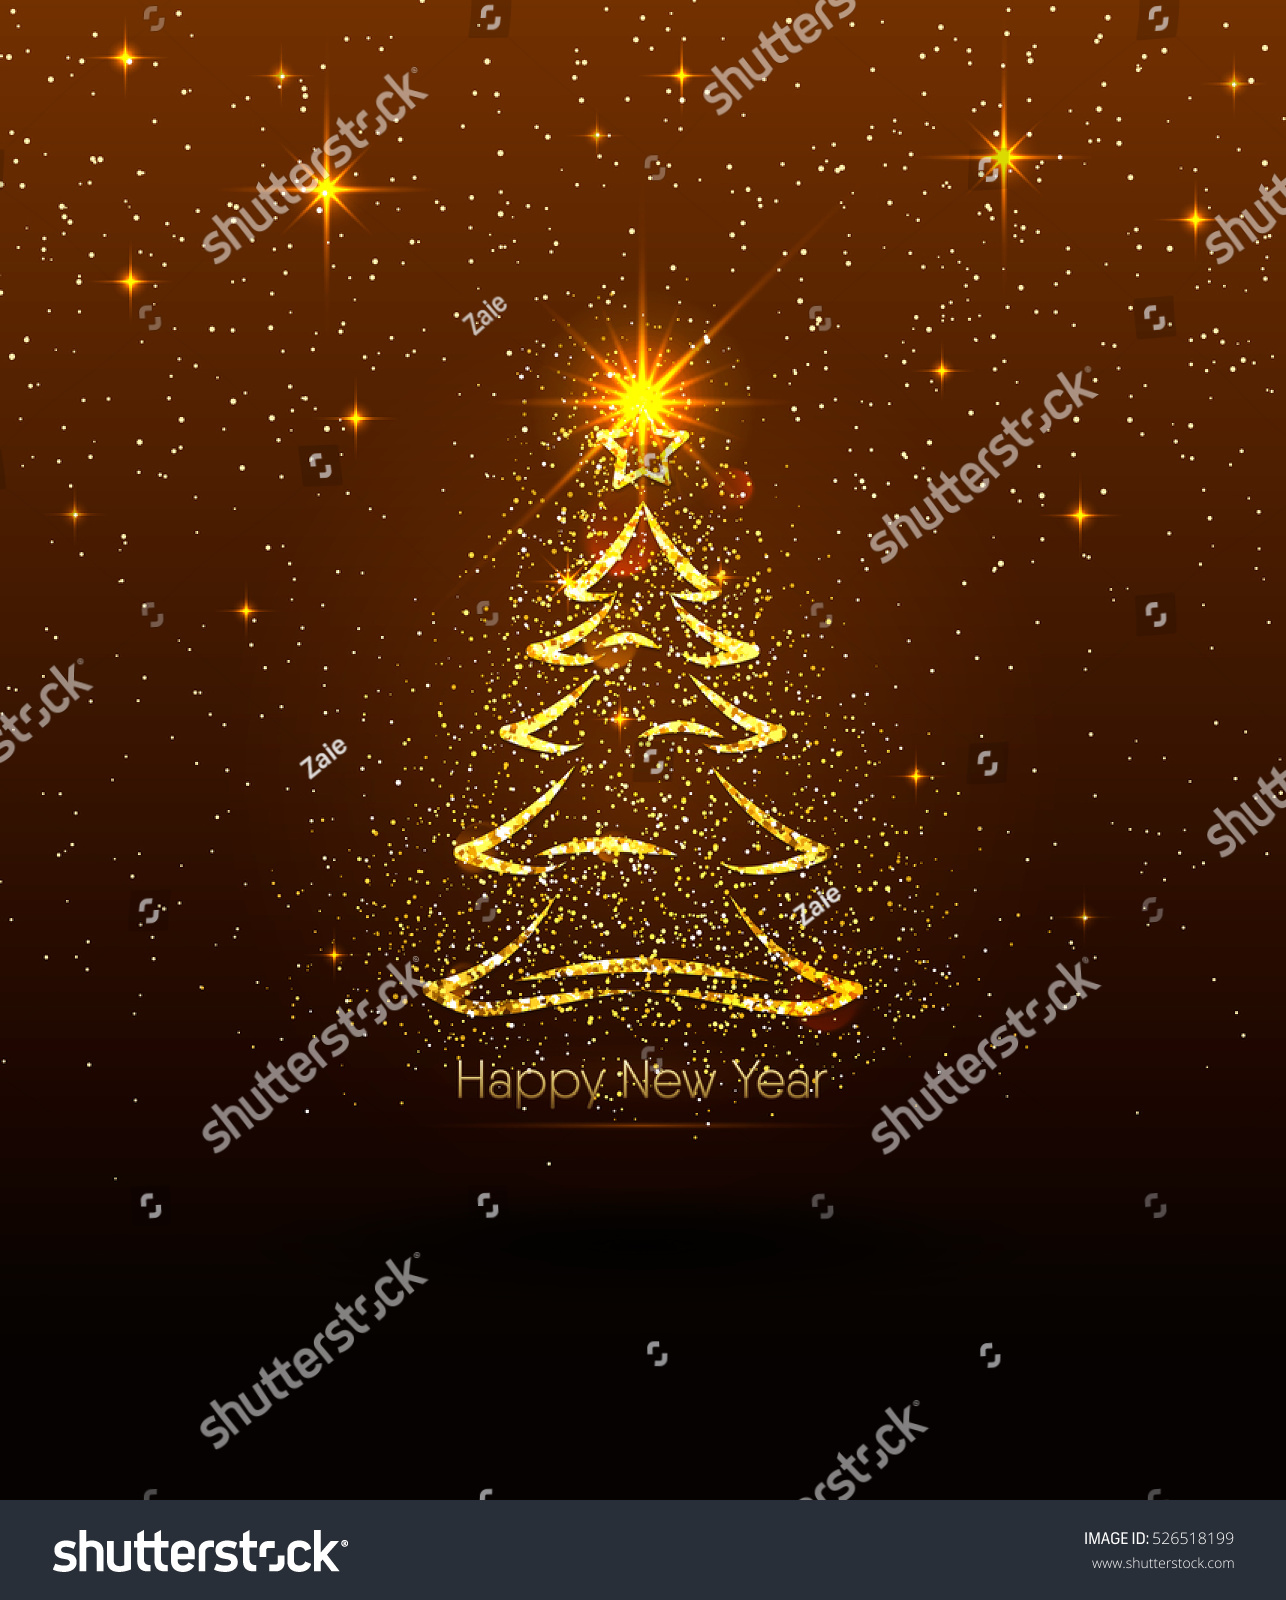 Vector illustration happy new year golden stock vector 526518199 vector illustration of happy new year golden luxury greeting with light effect glitter fir kristyandbryce Image collections